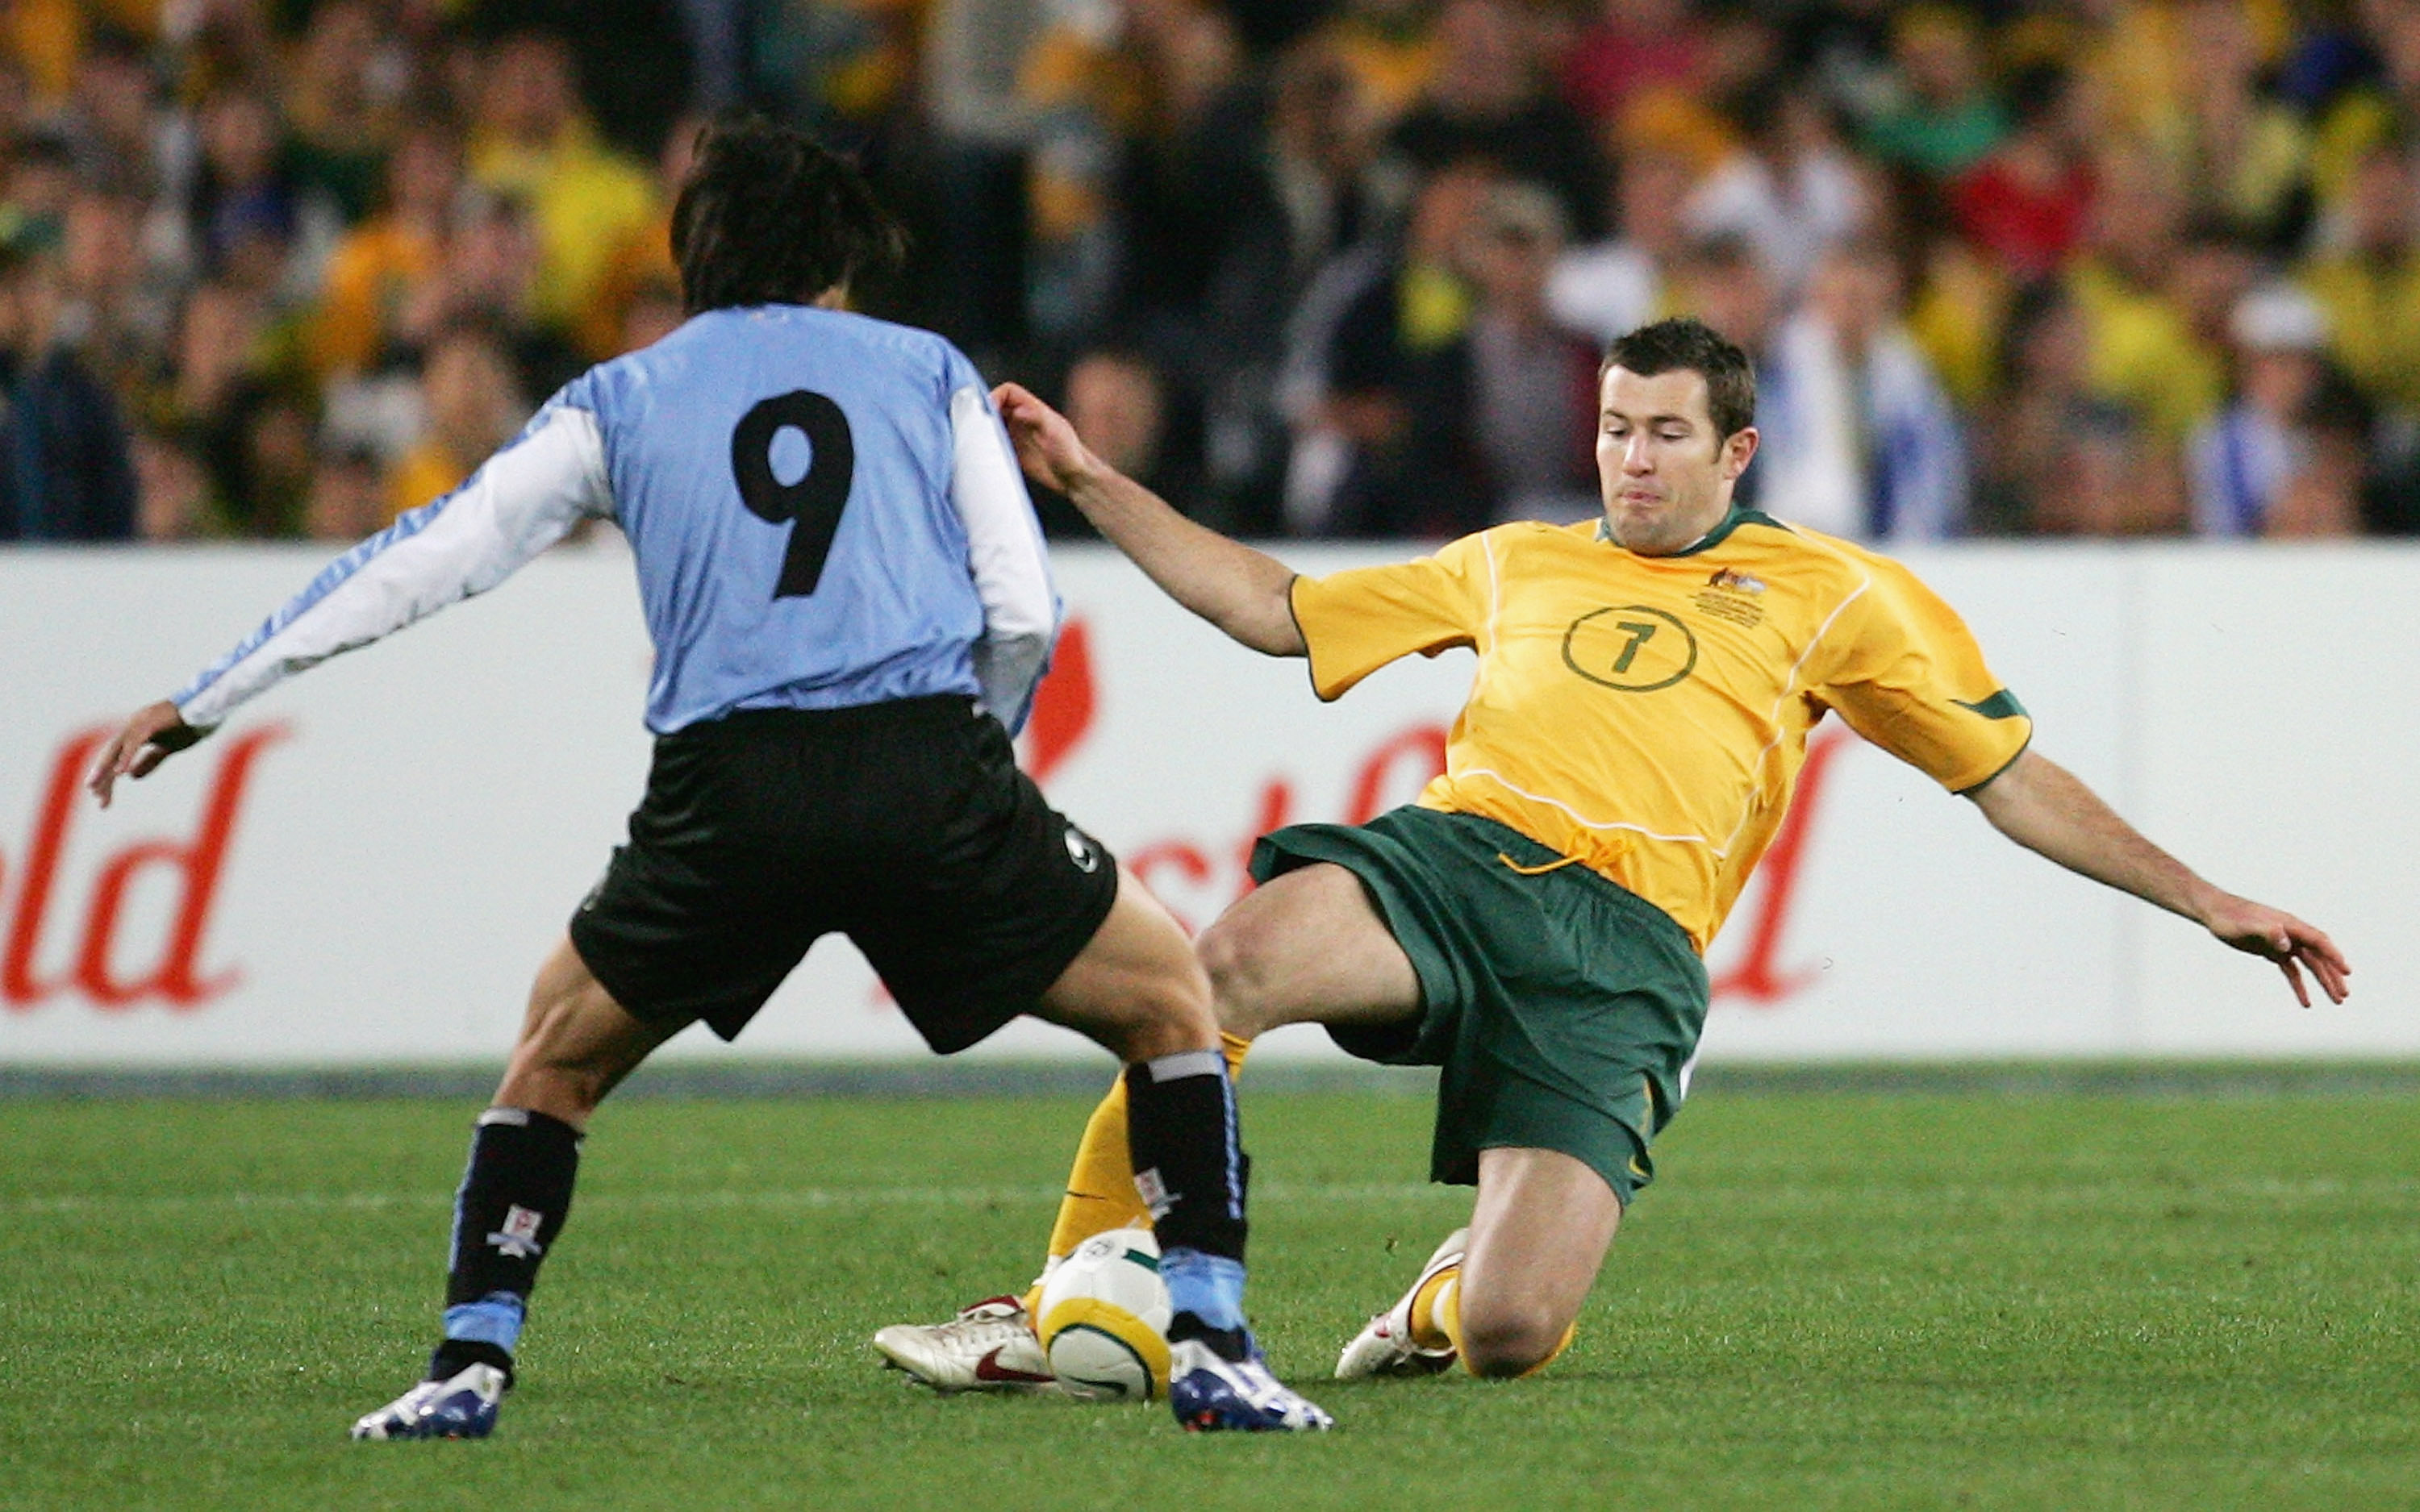 The tireless Brett Emerton challenges for the ball with Uruguay's mercurial playmaker Alvaro Recoba.